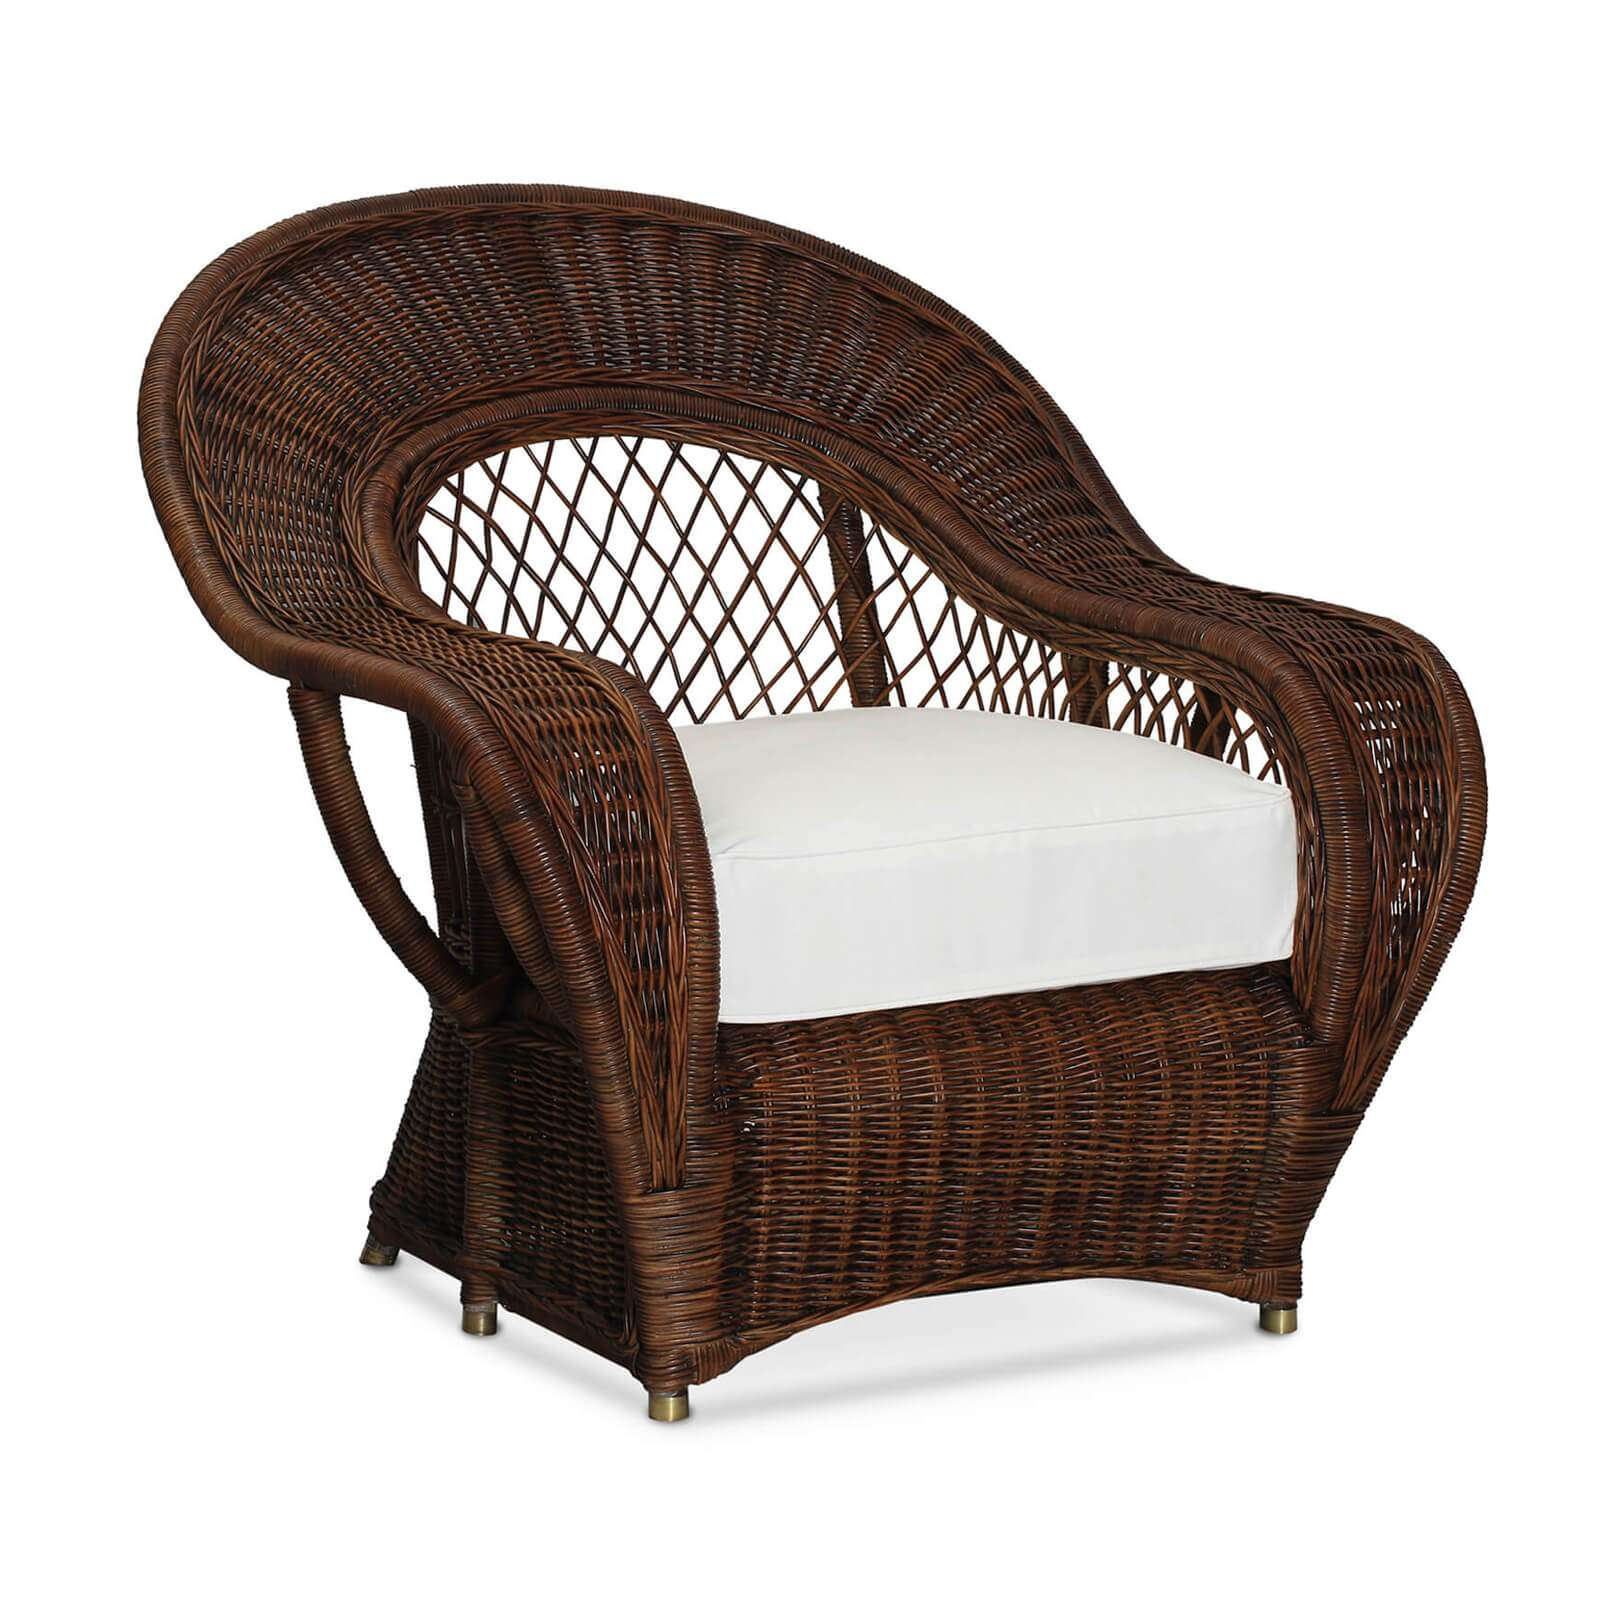 CALYPSO CHAIR 004 - STUART MEMBERY HOME COLLECTION